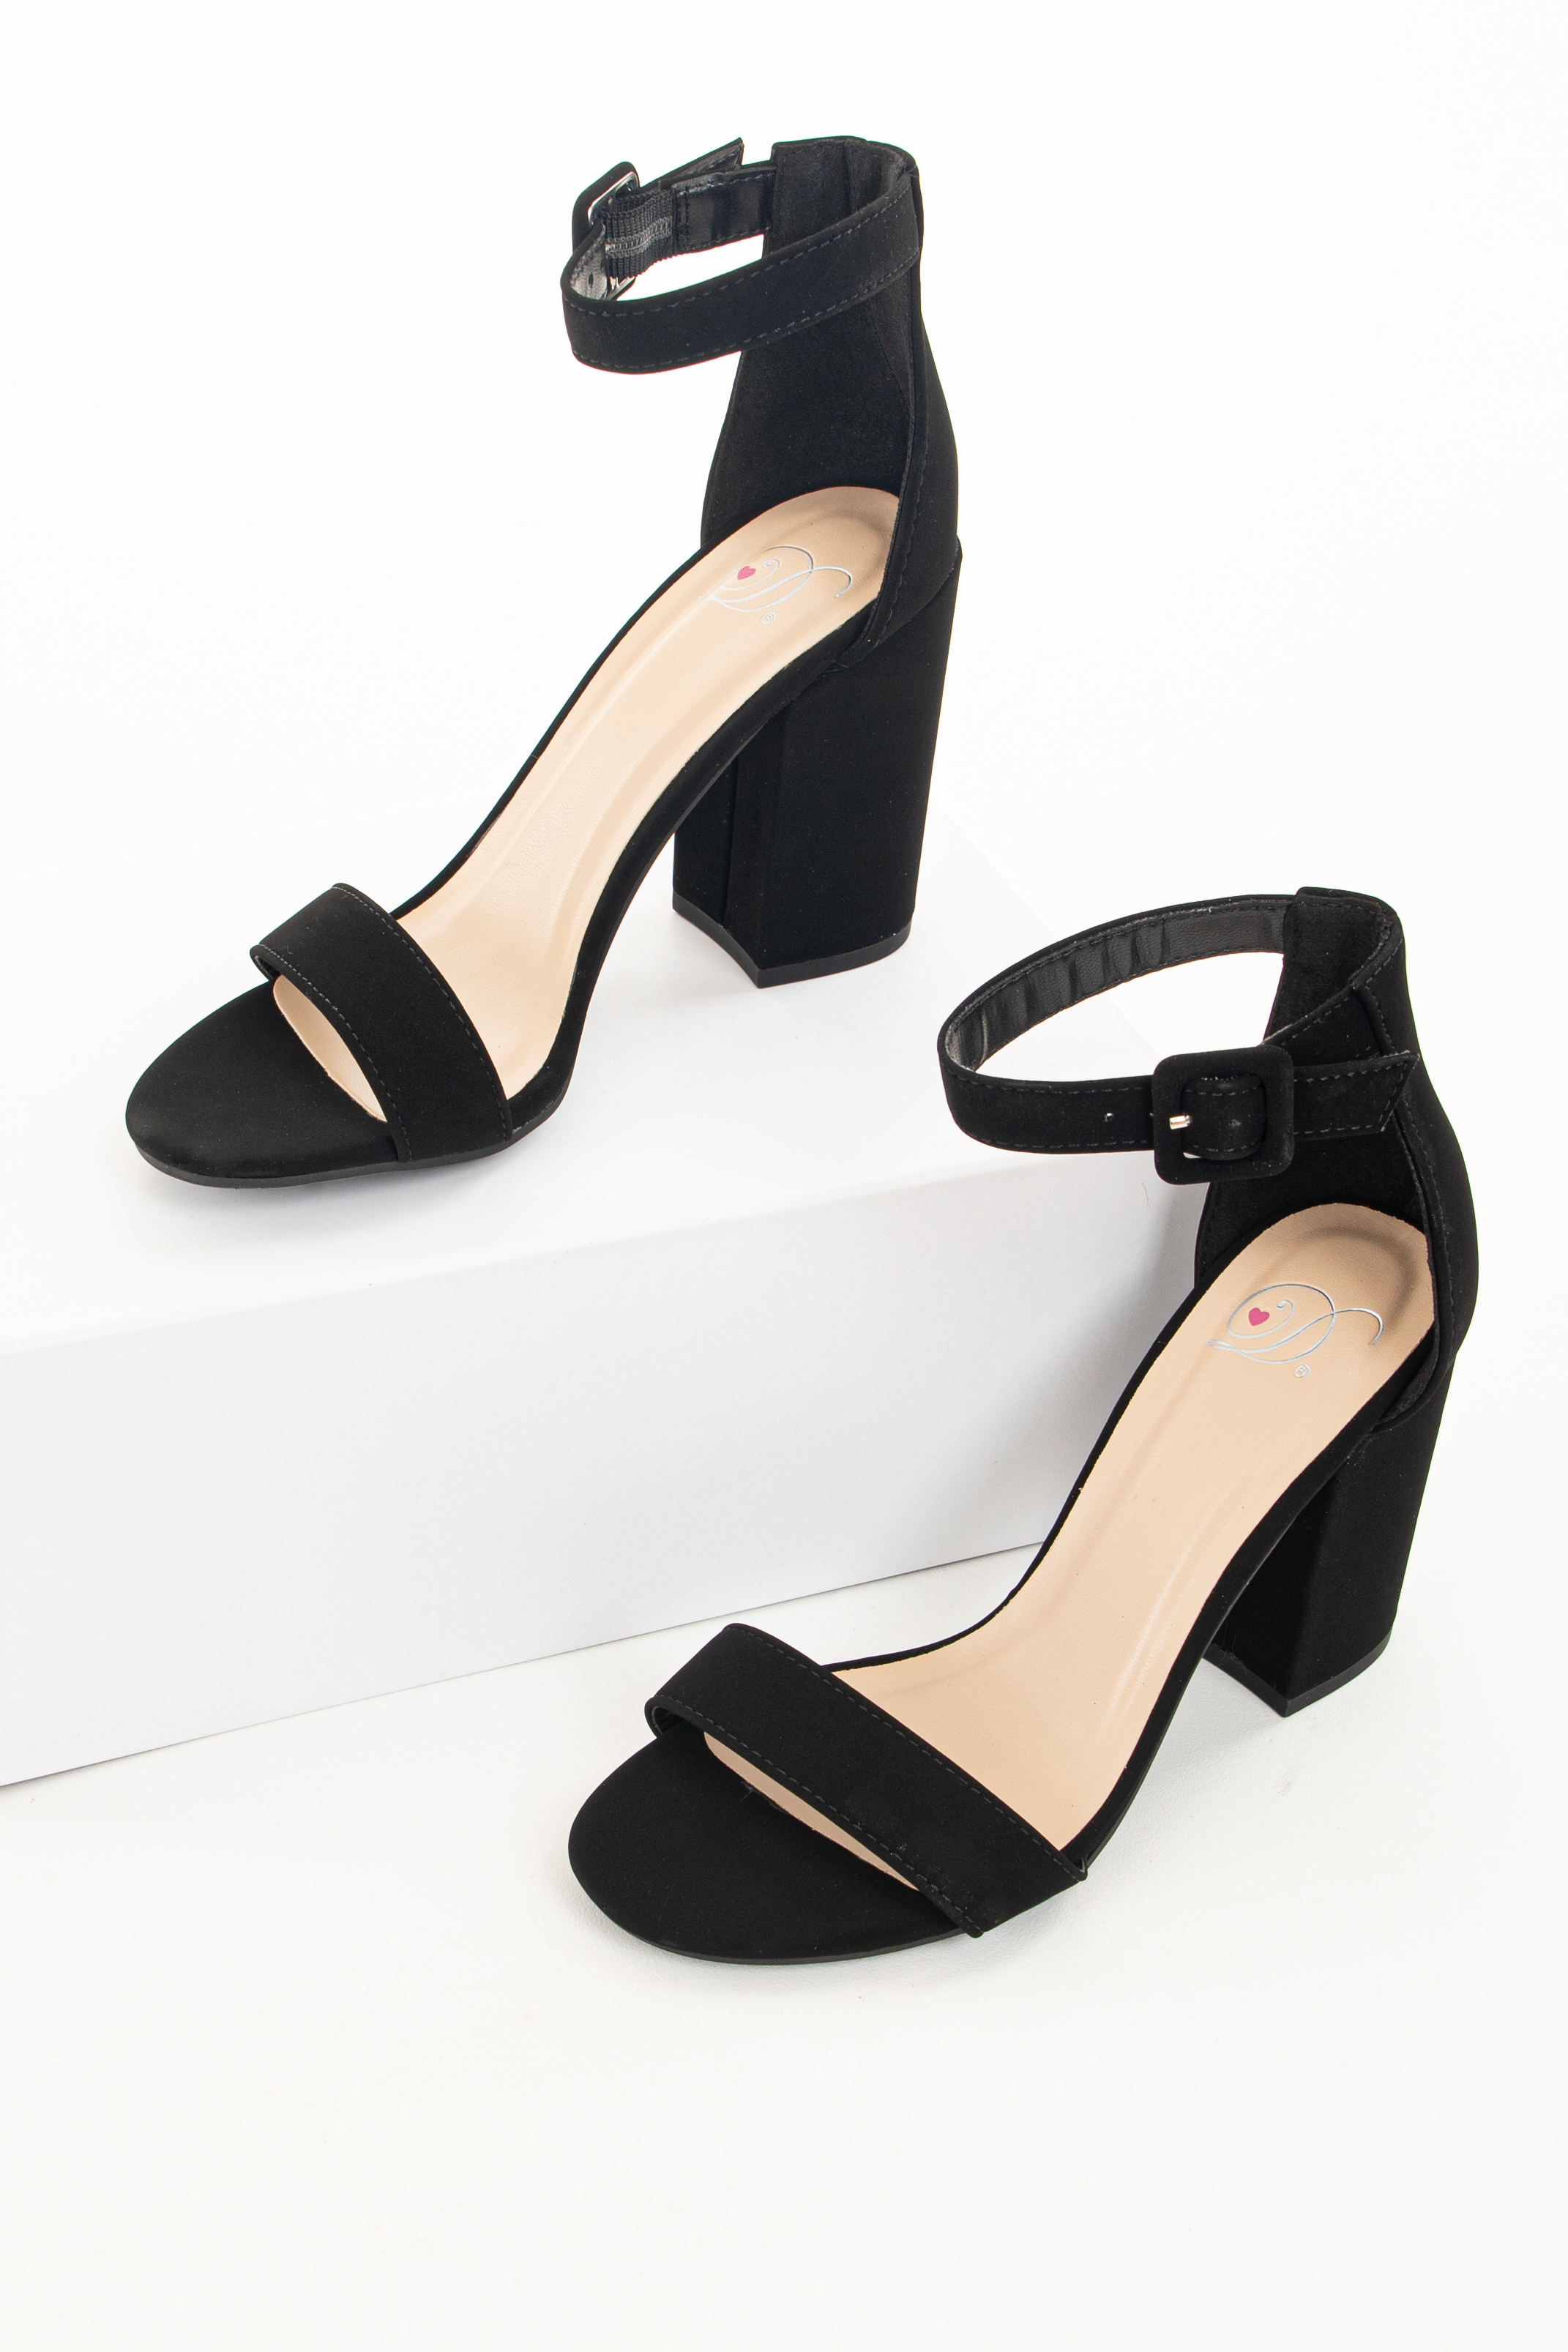 Black Chunky Block Heels with Toe and Ankle Straps